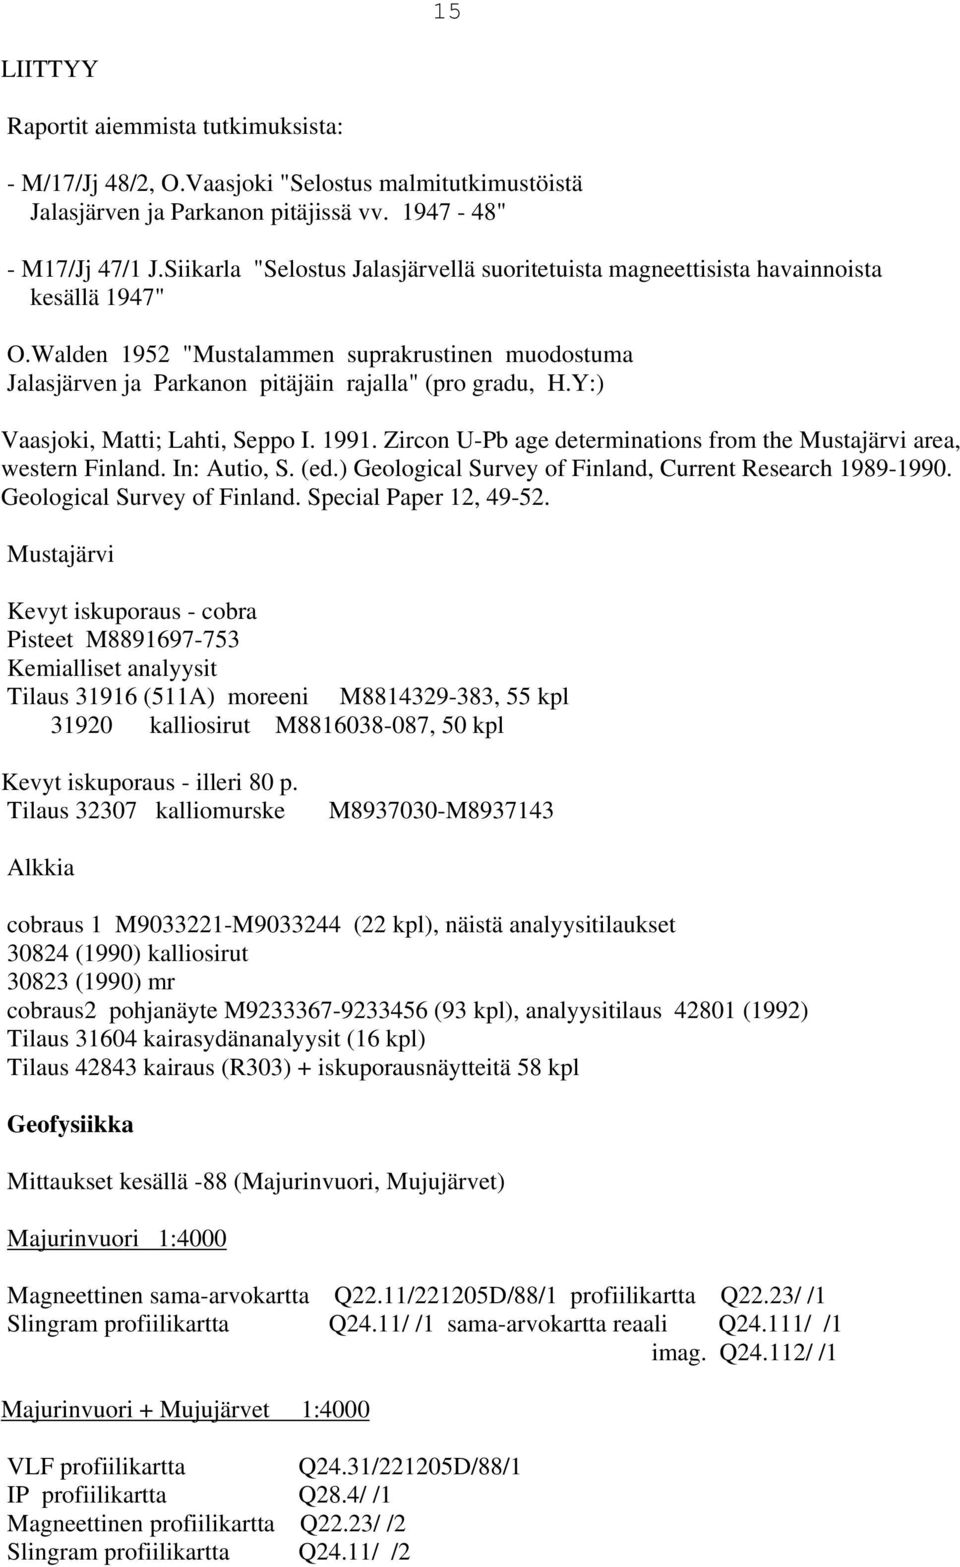 Y:) Vaasjoki, Matti; Lahti, Seppo I. 1991. Zircon U-Pb age determinations from the Mustajärvi area, western Finland. In: Autio, S. (ed.) Geological Survey of Finland, Current Research 1989-1990.